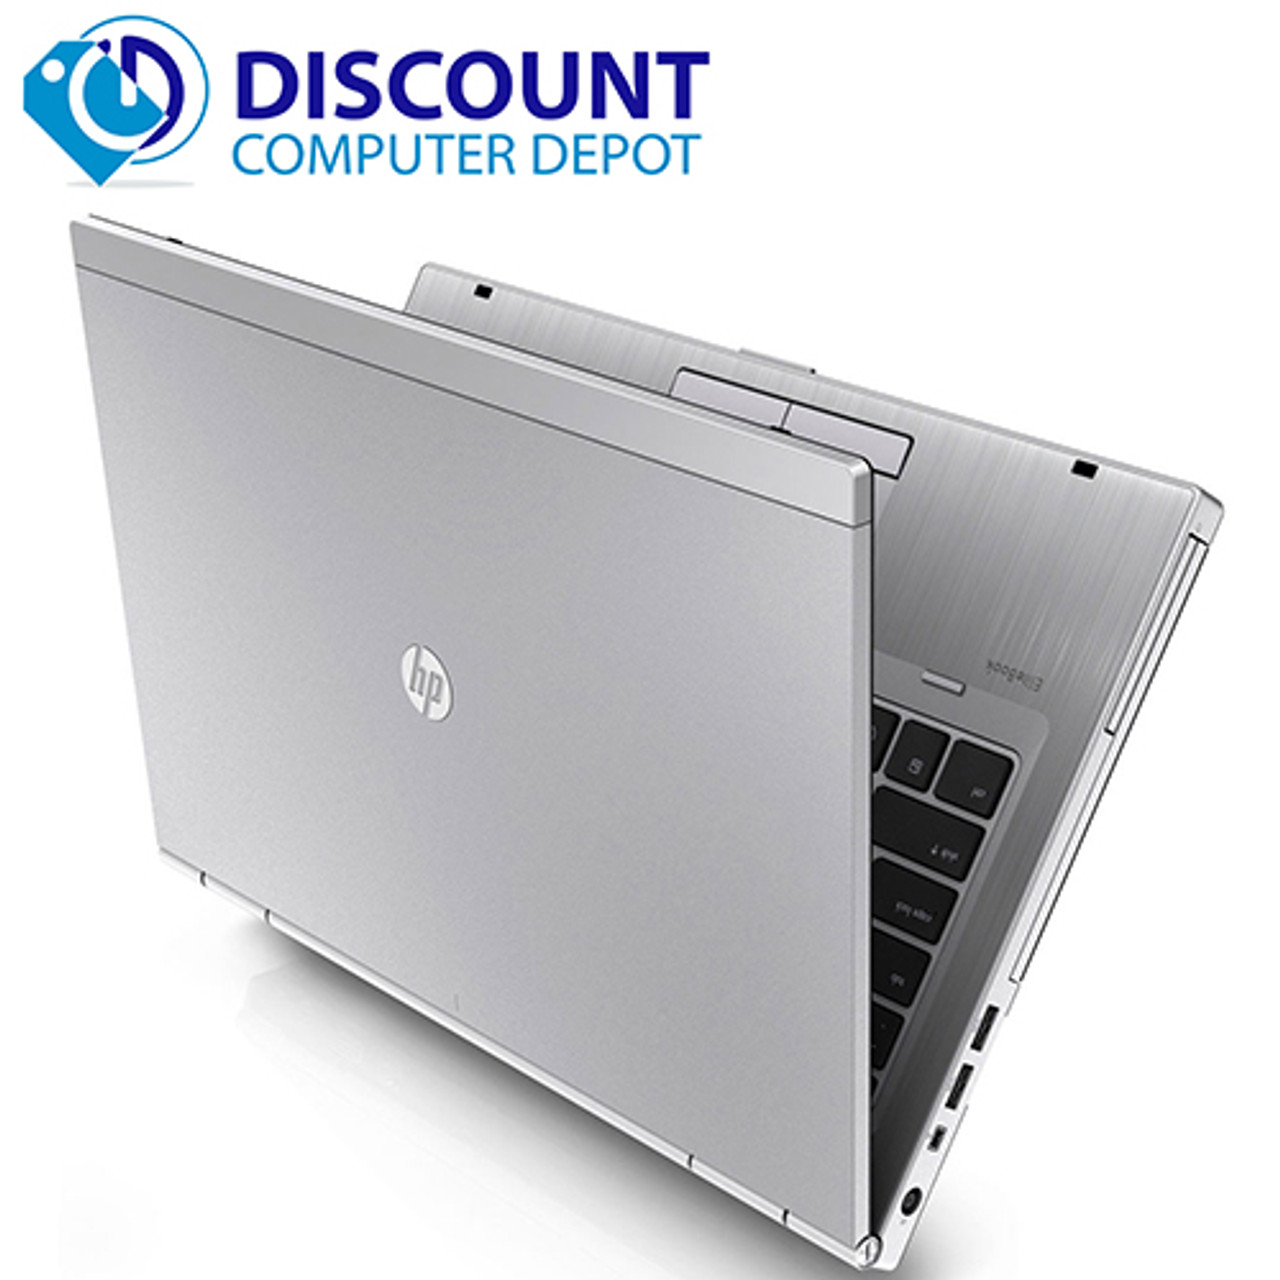 Hp elitebook 8460p wireless drivers windows 7 32 bit | Free